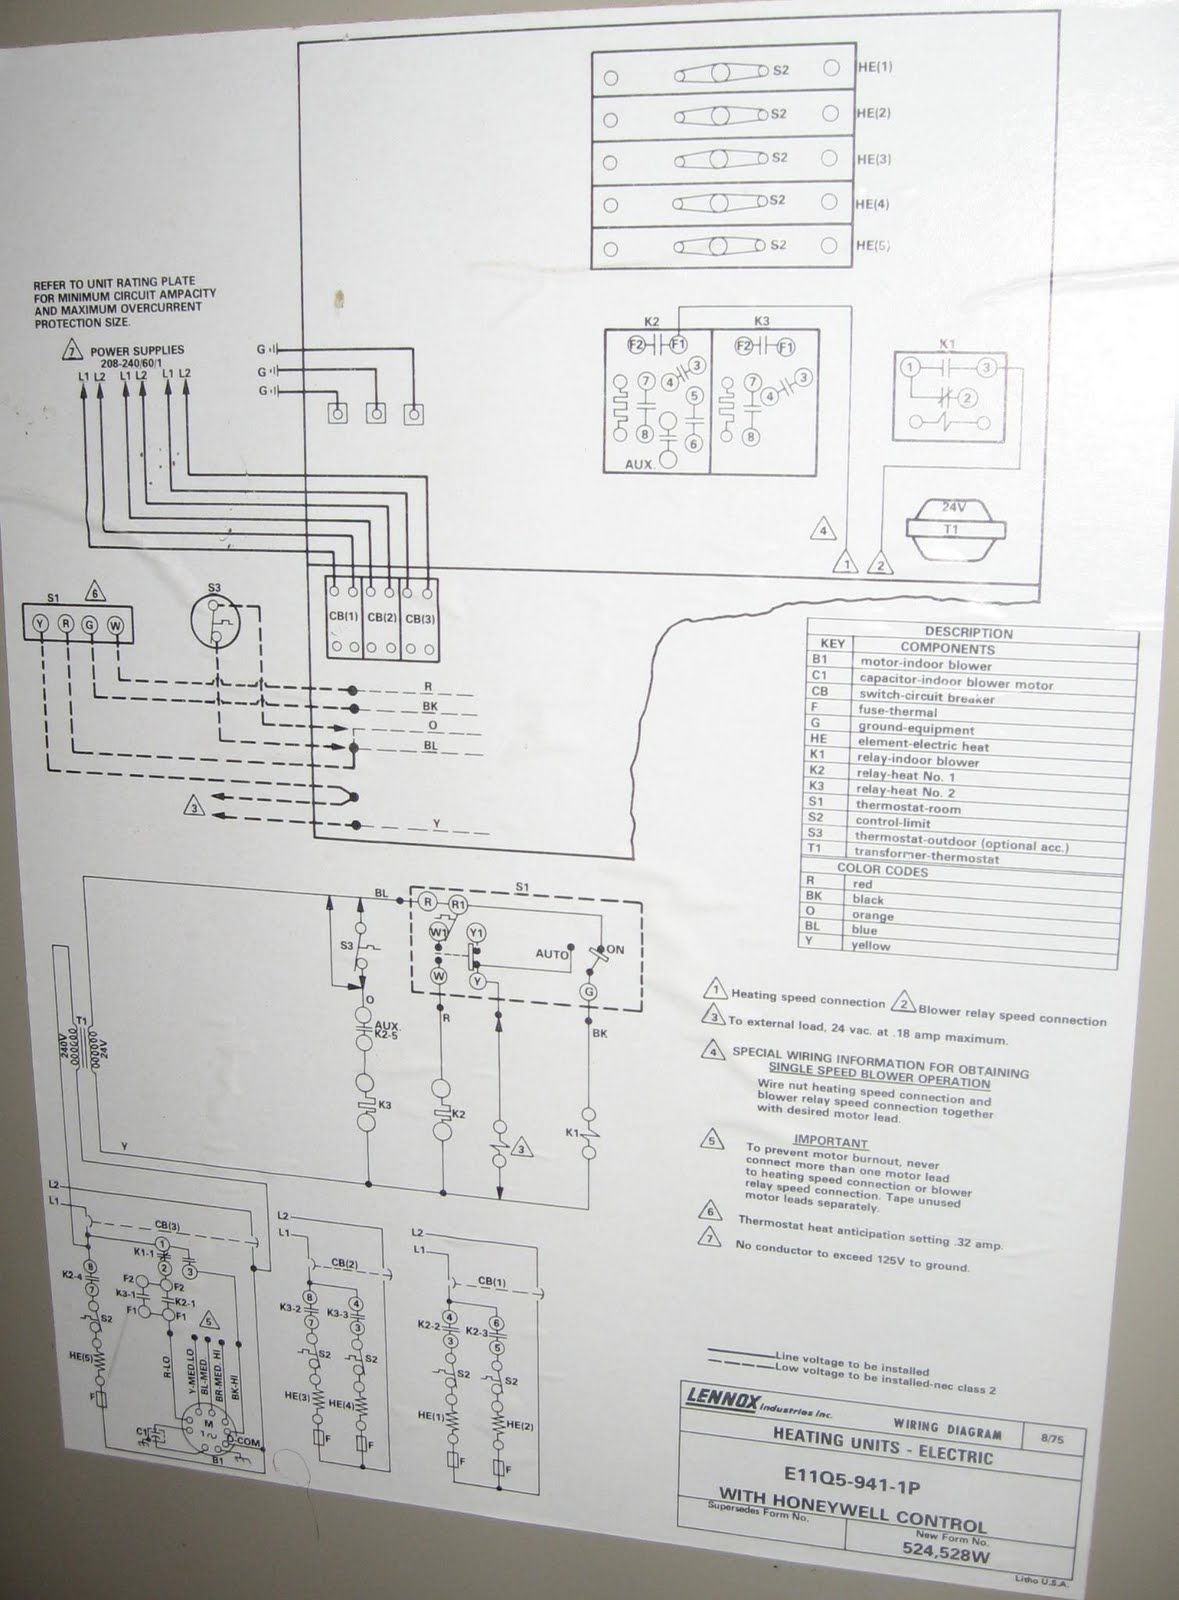 electric furnace sequencer wiring diagram electric circuits u003e original electric furnace l32304 next gr on electric furnace sequencer wiring diagram